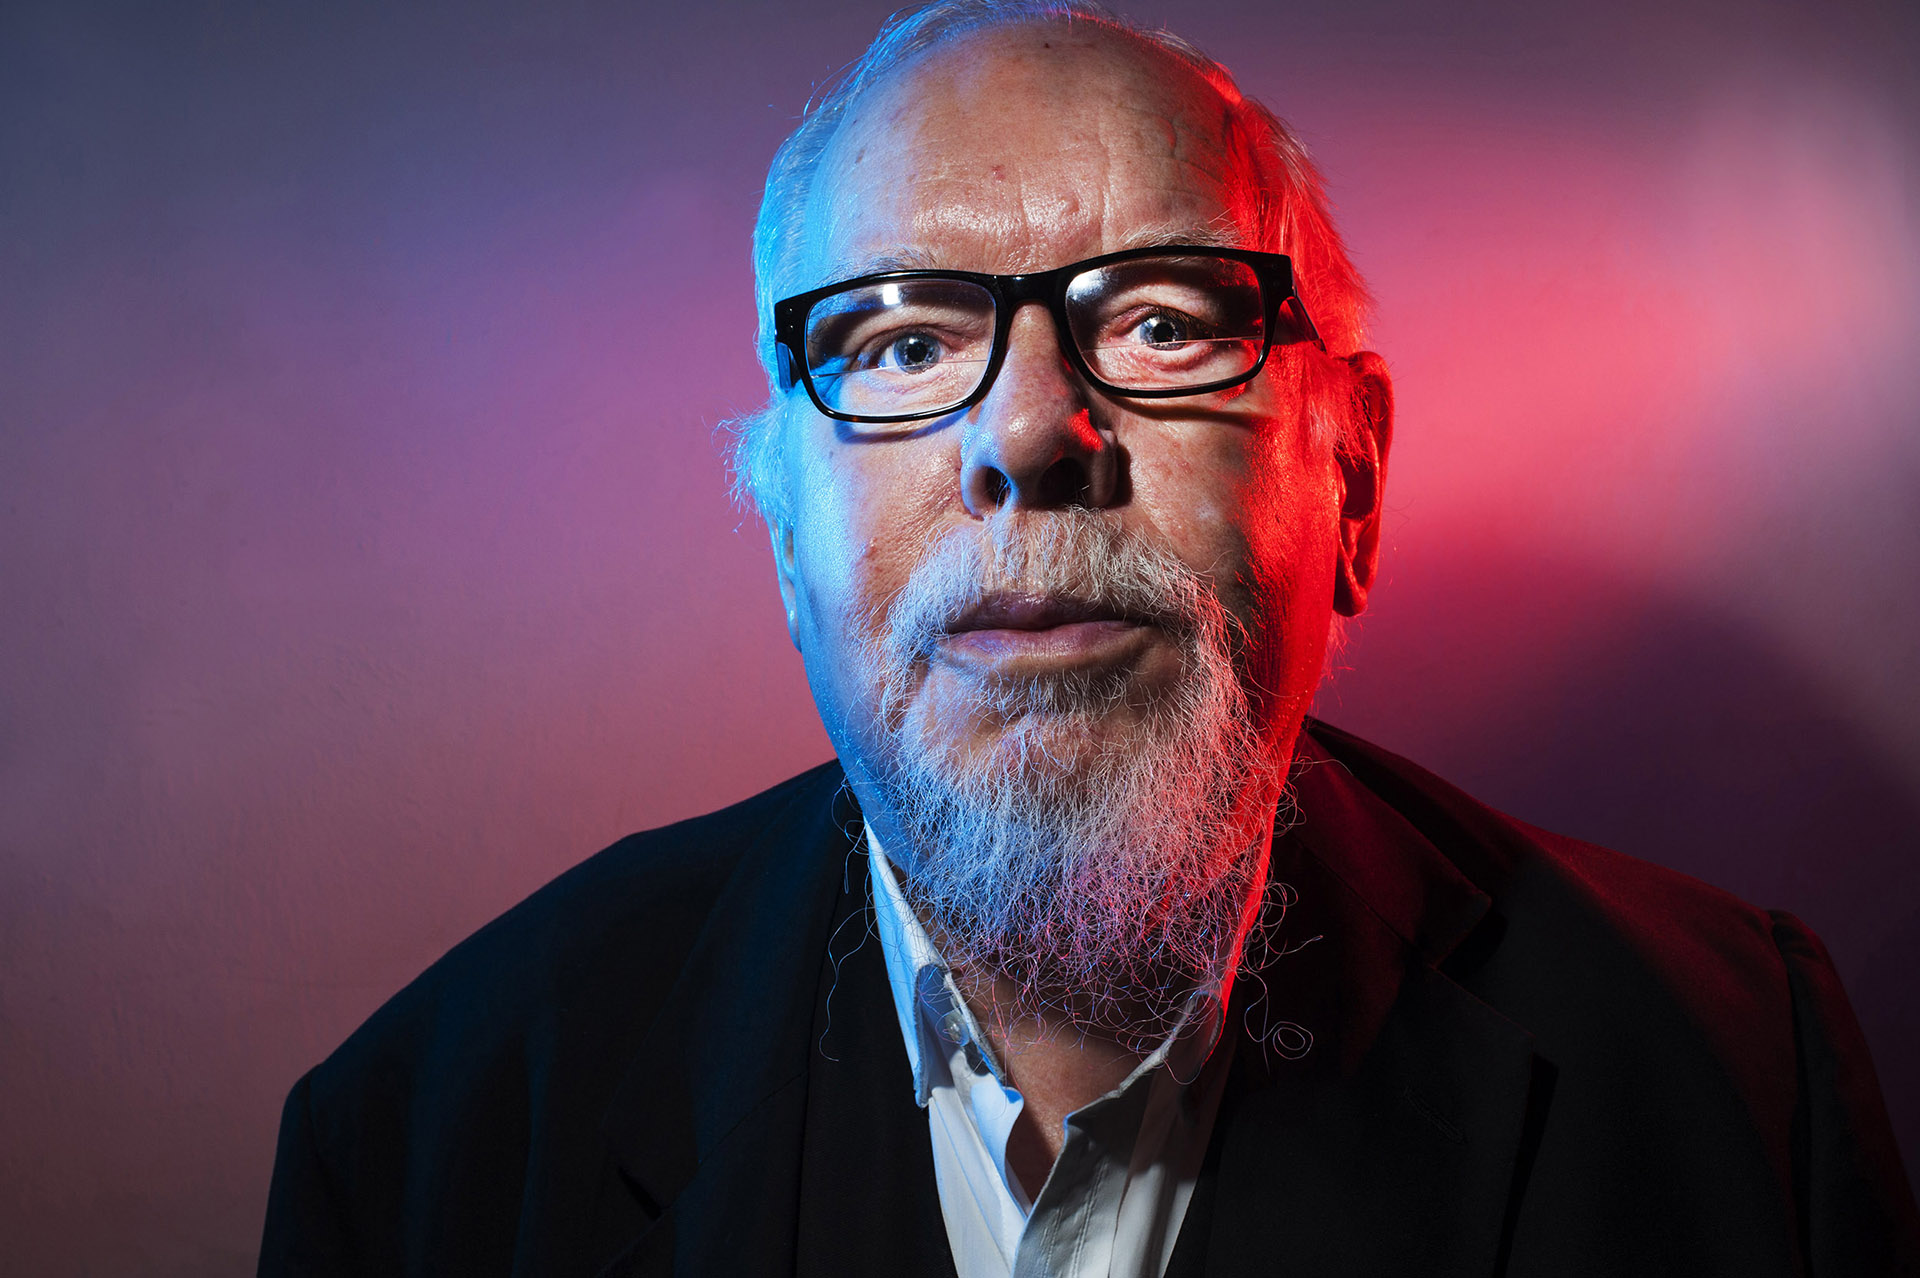 Photograph of Artist Peter Blake at Manchester Literary Festival by professional photographer Jon Parker Lee UK